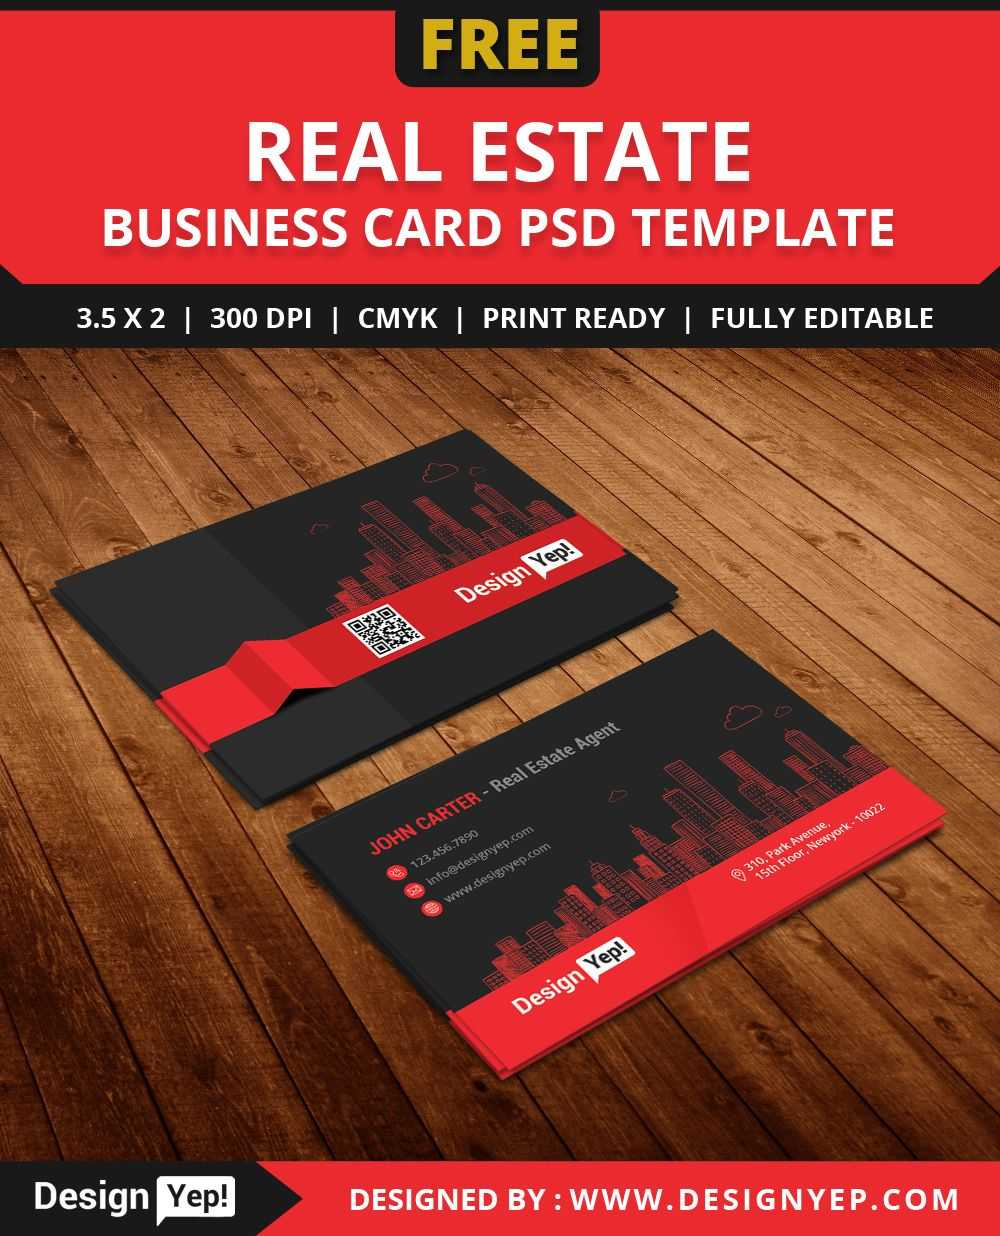 Free Real Estate Agent Business Card Template Psd | Business Throughout Real Estate Business Cards Templates Free